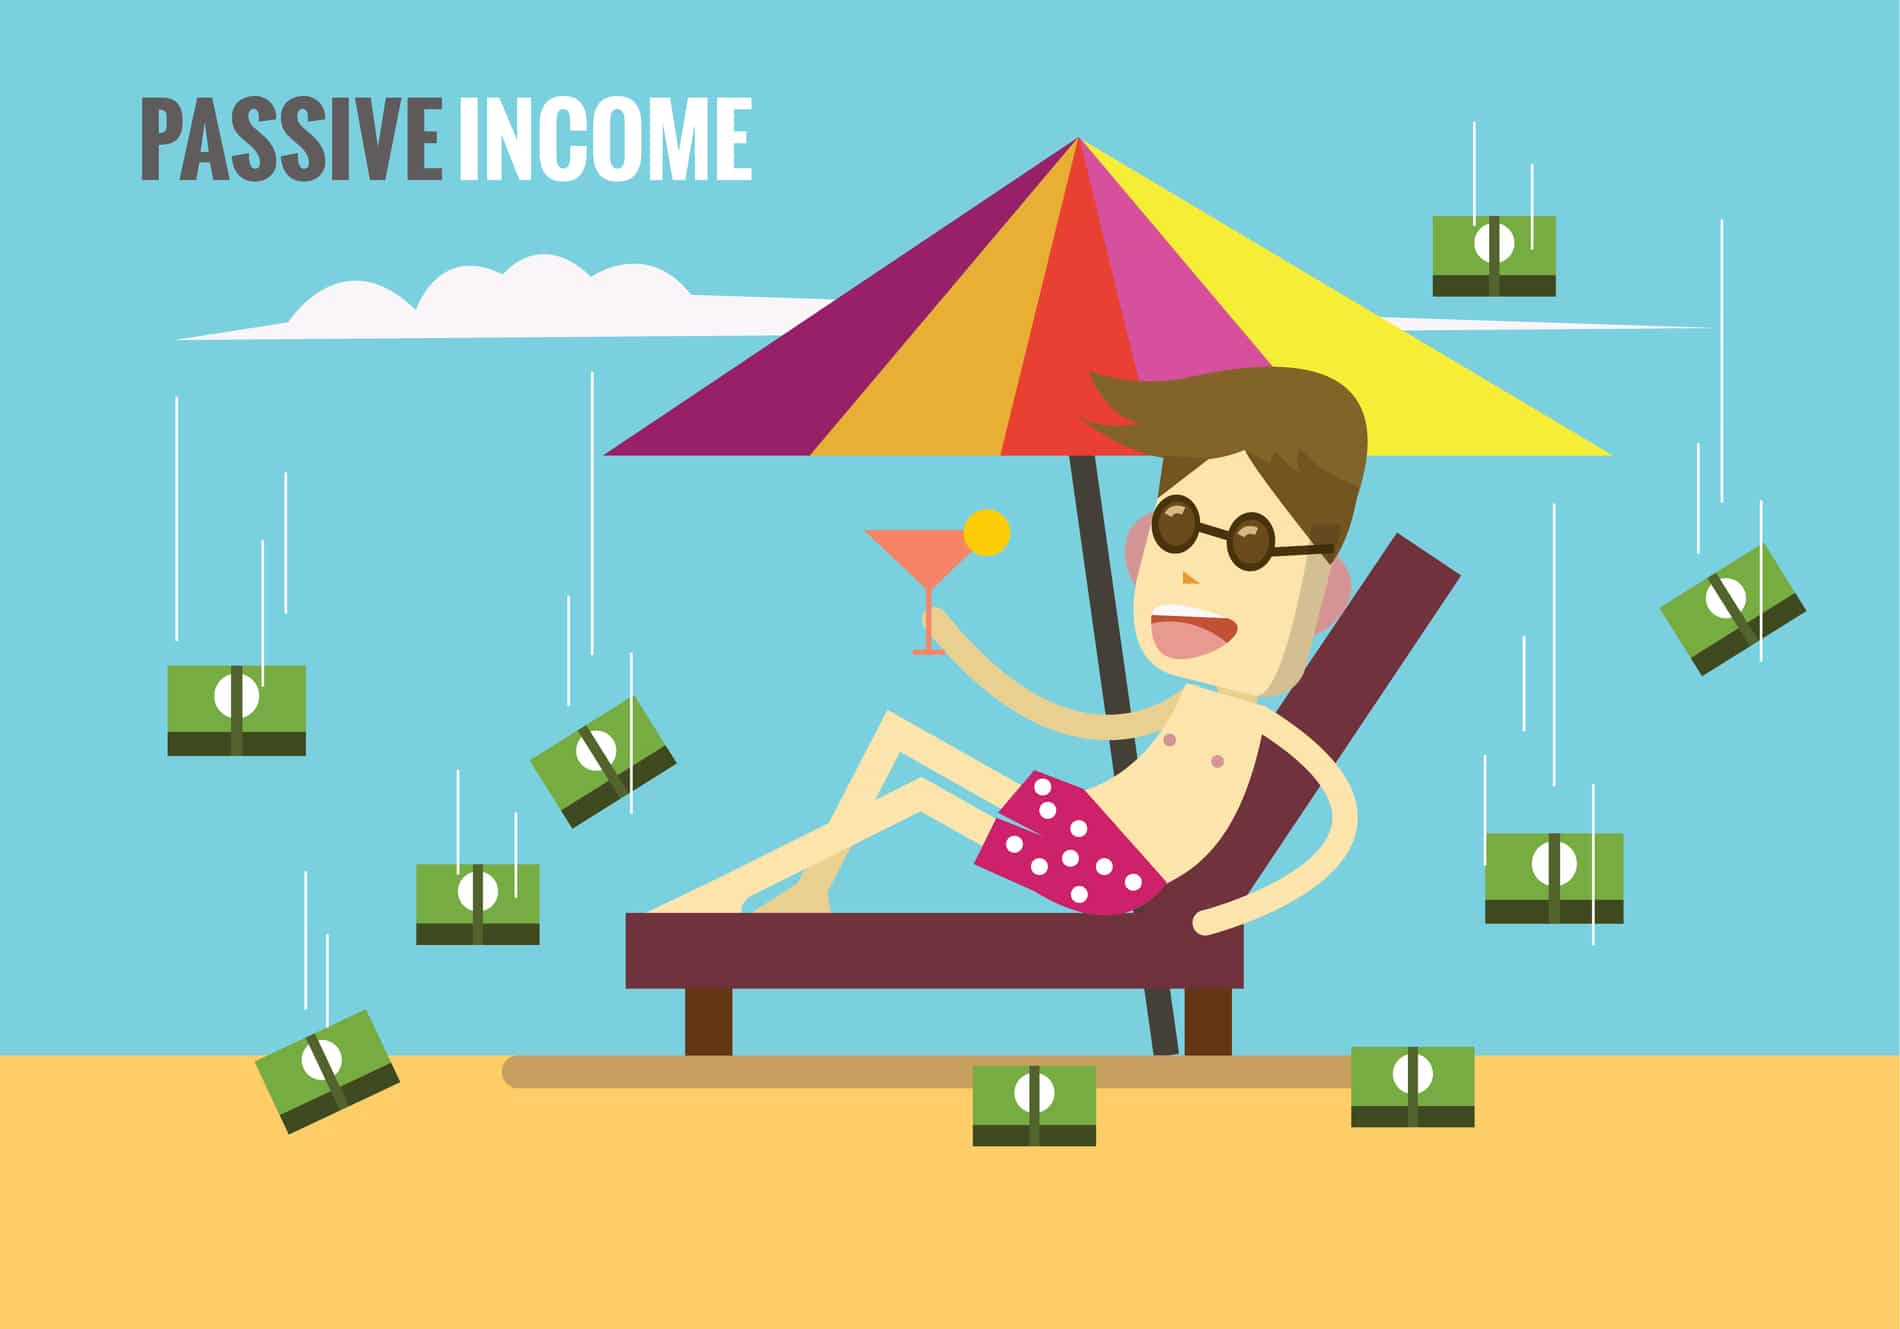 Create Passive Income With These 4 Types of Investments